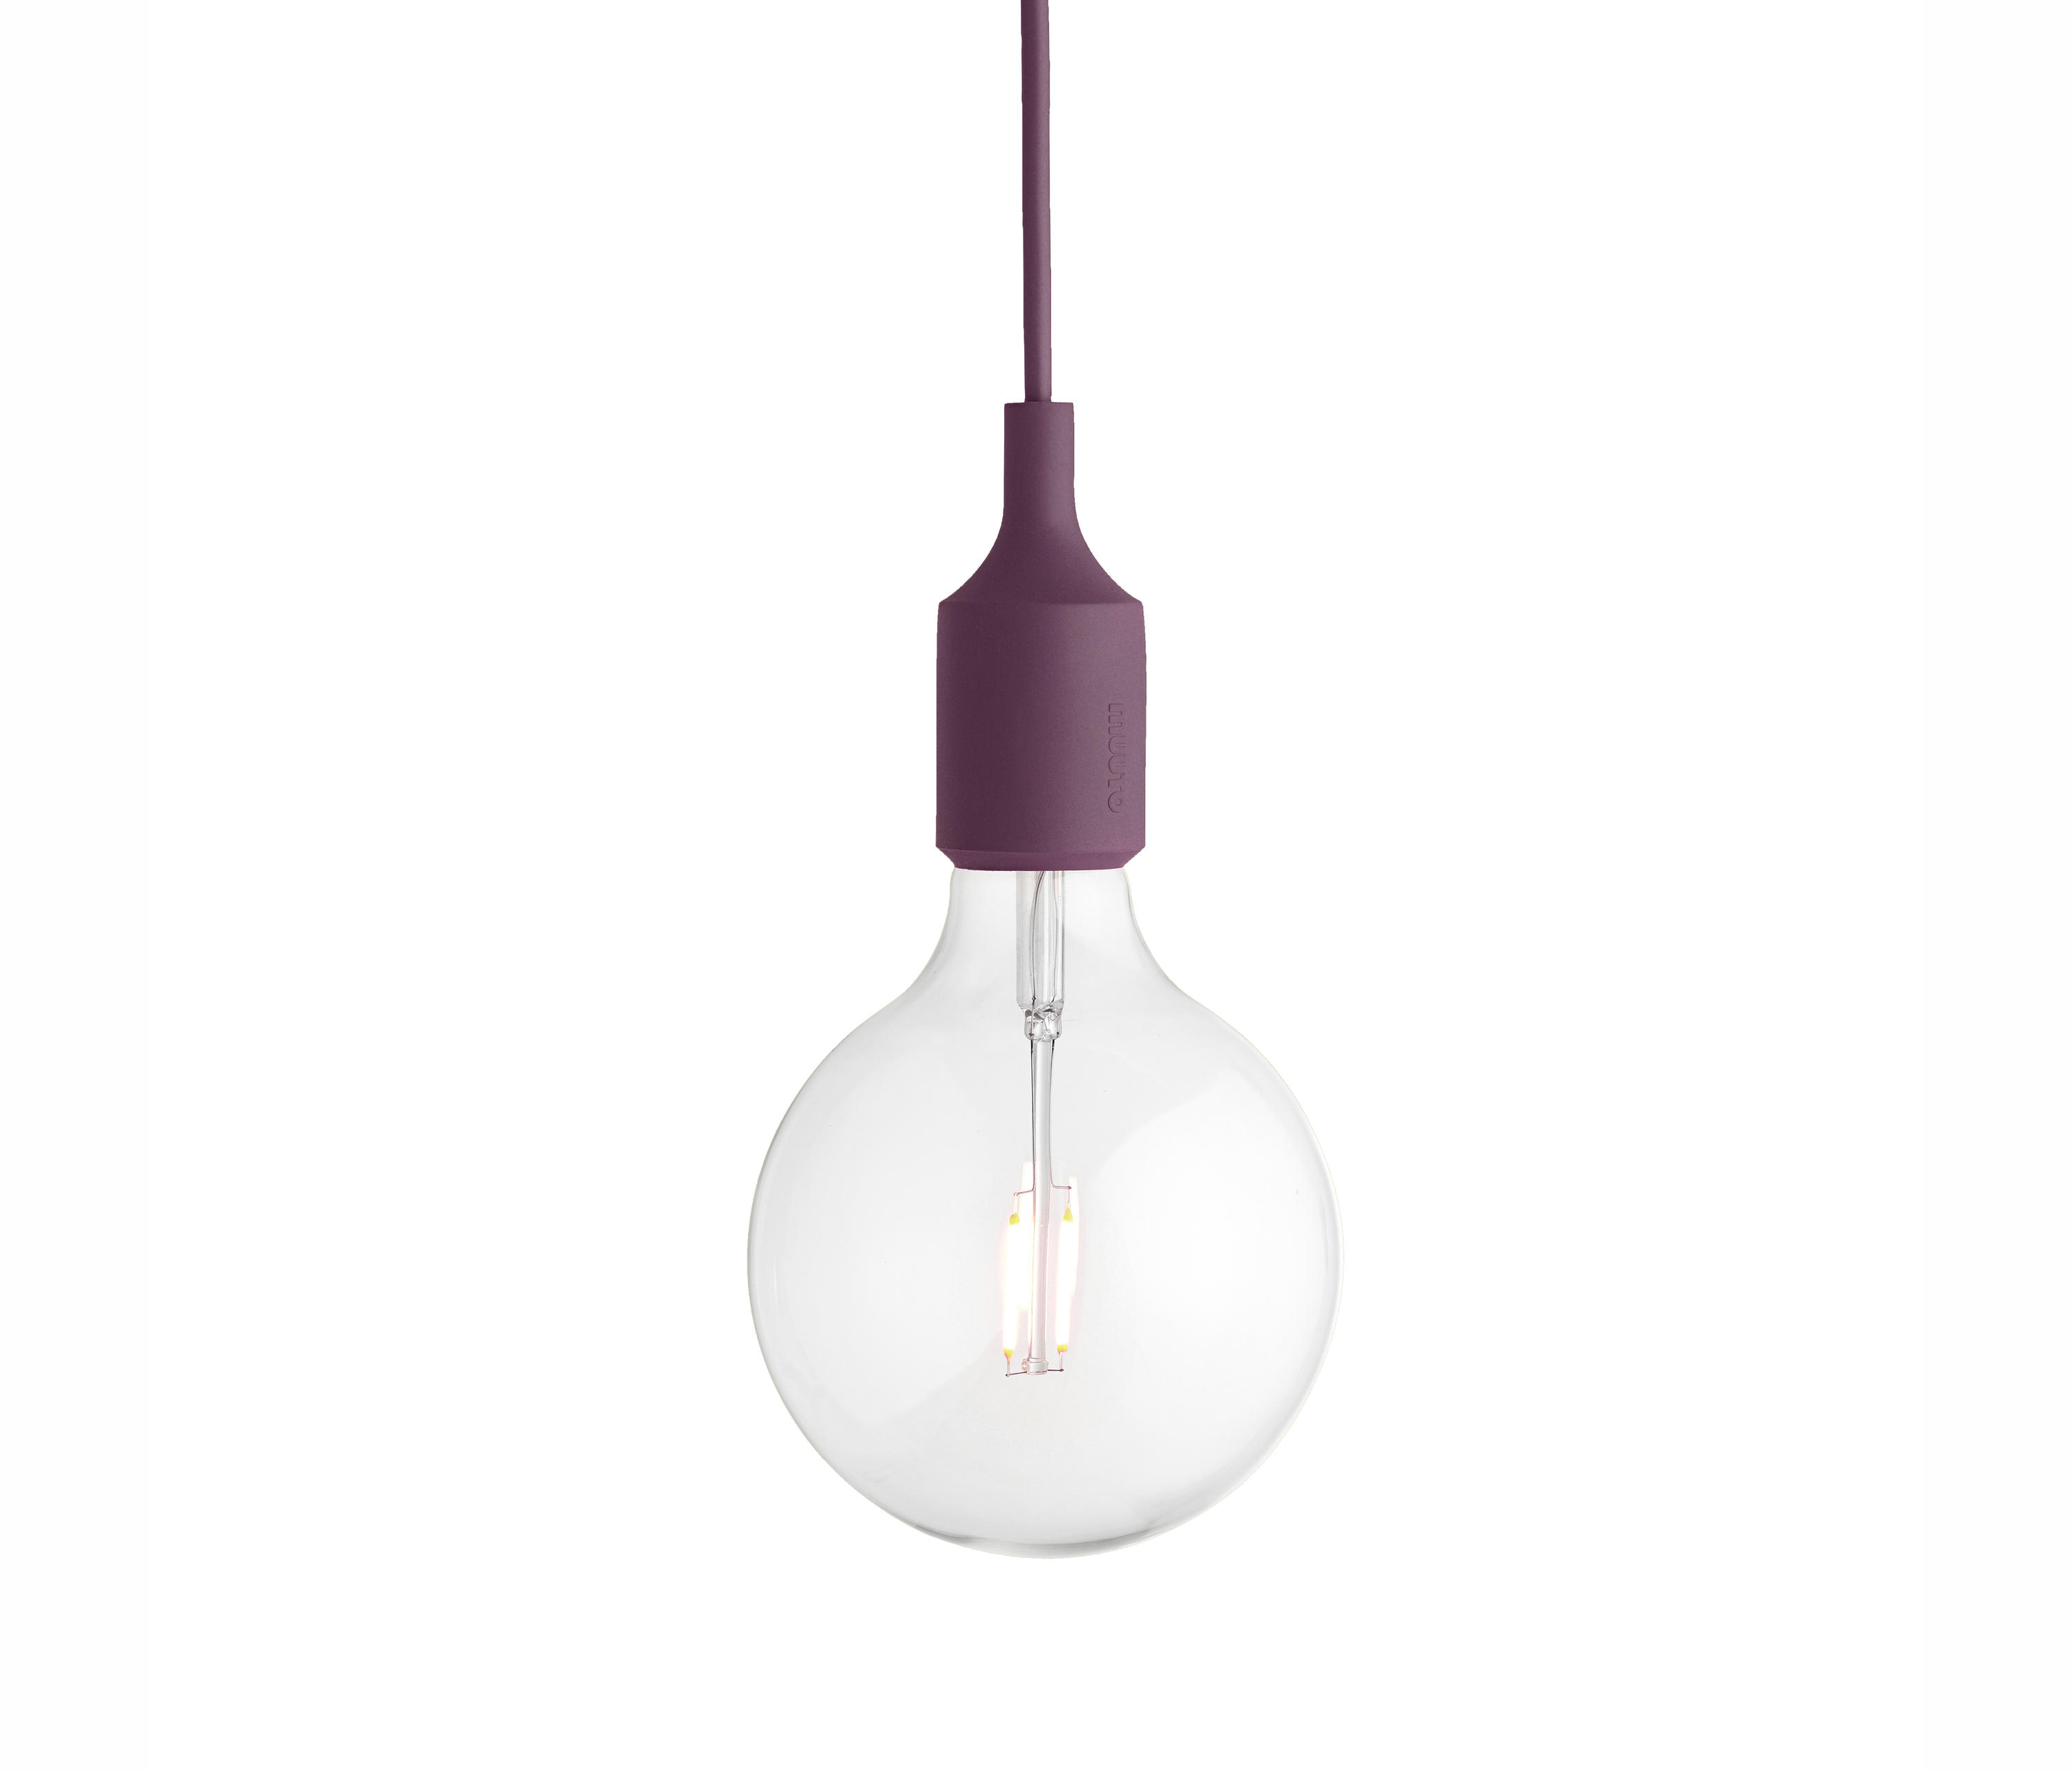 E27 Pendant Lamp E27 Pendant Lamp Suspended Lights From Muuto Architonic